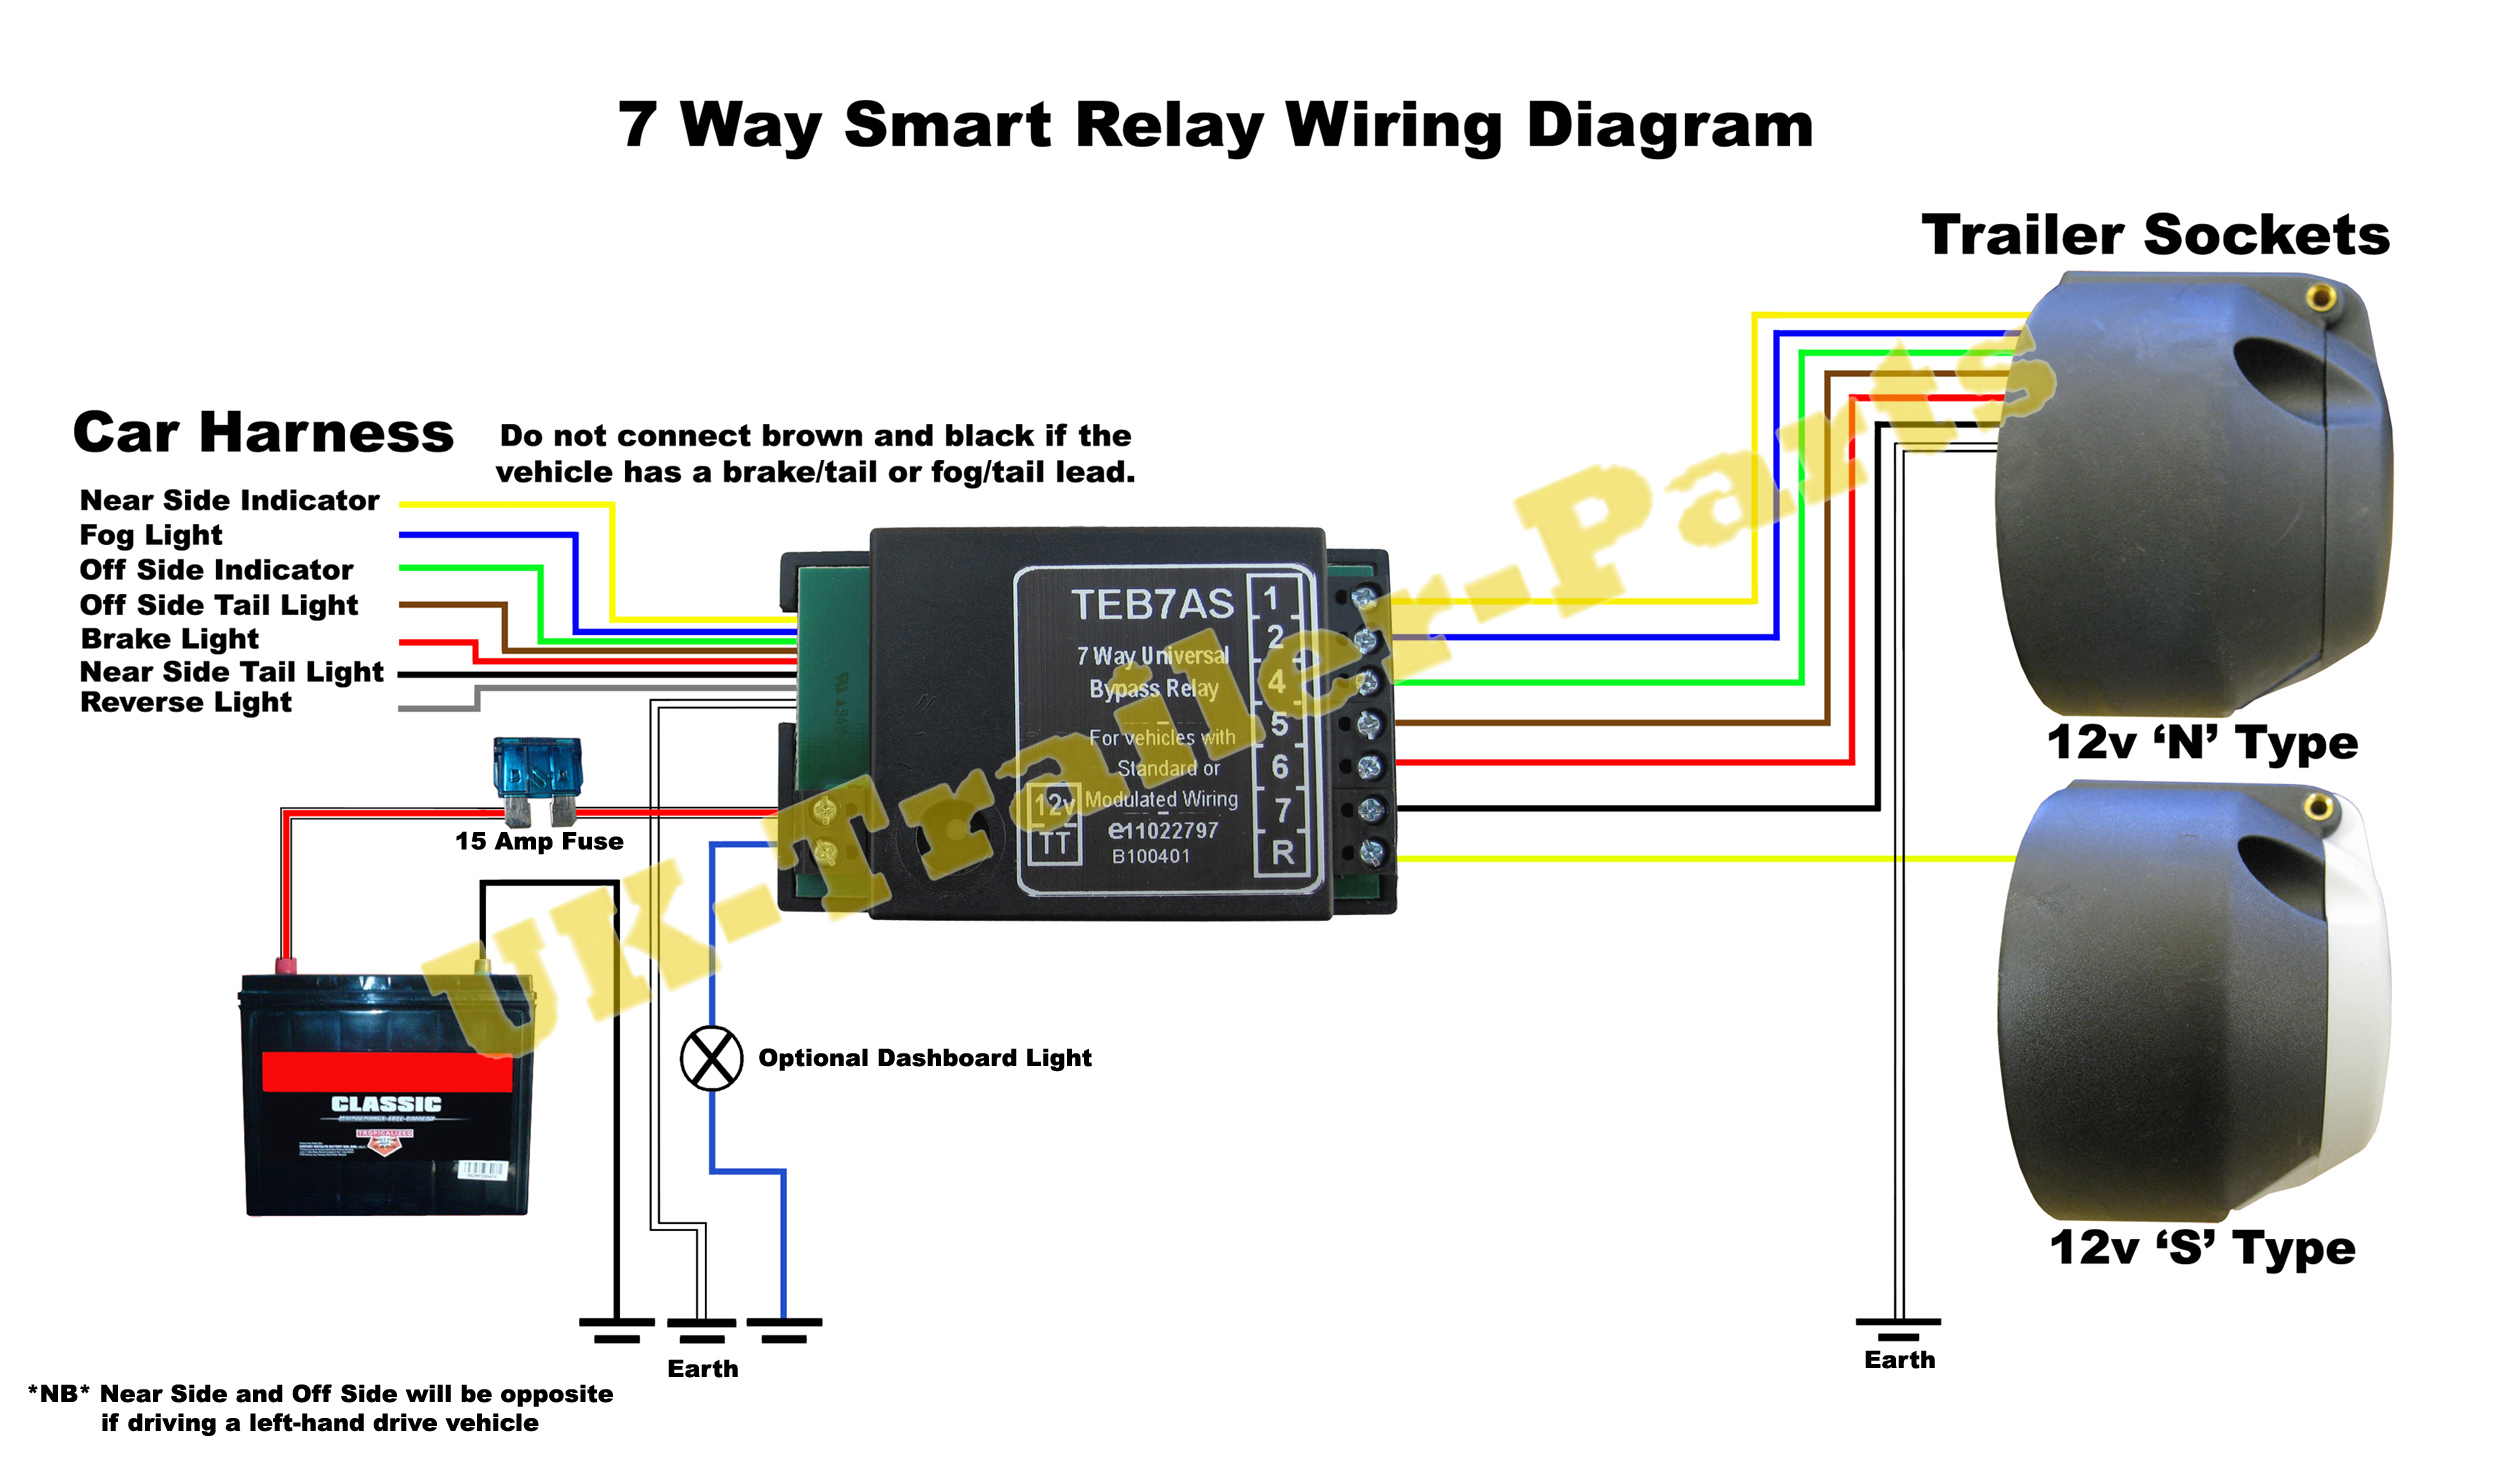 Bmw e46 rear light wiring diagram also fog light relay wiring 7 way universal bypass relay wiring diagram uk trailer parts rh uk trailer parts co uk asfbconference2016 Images